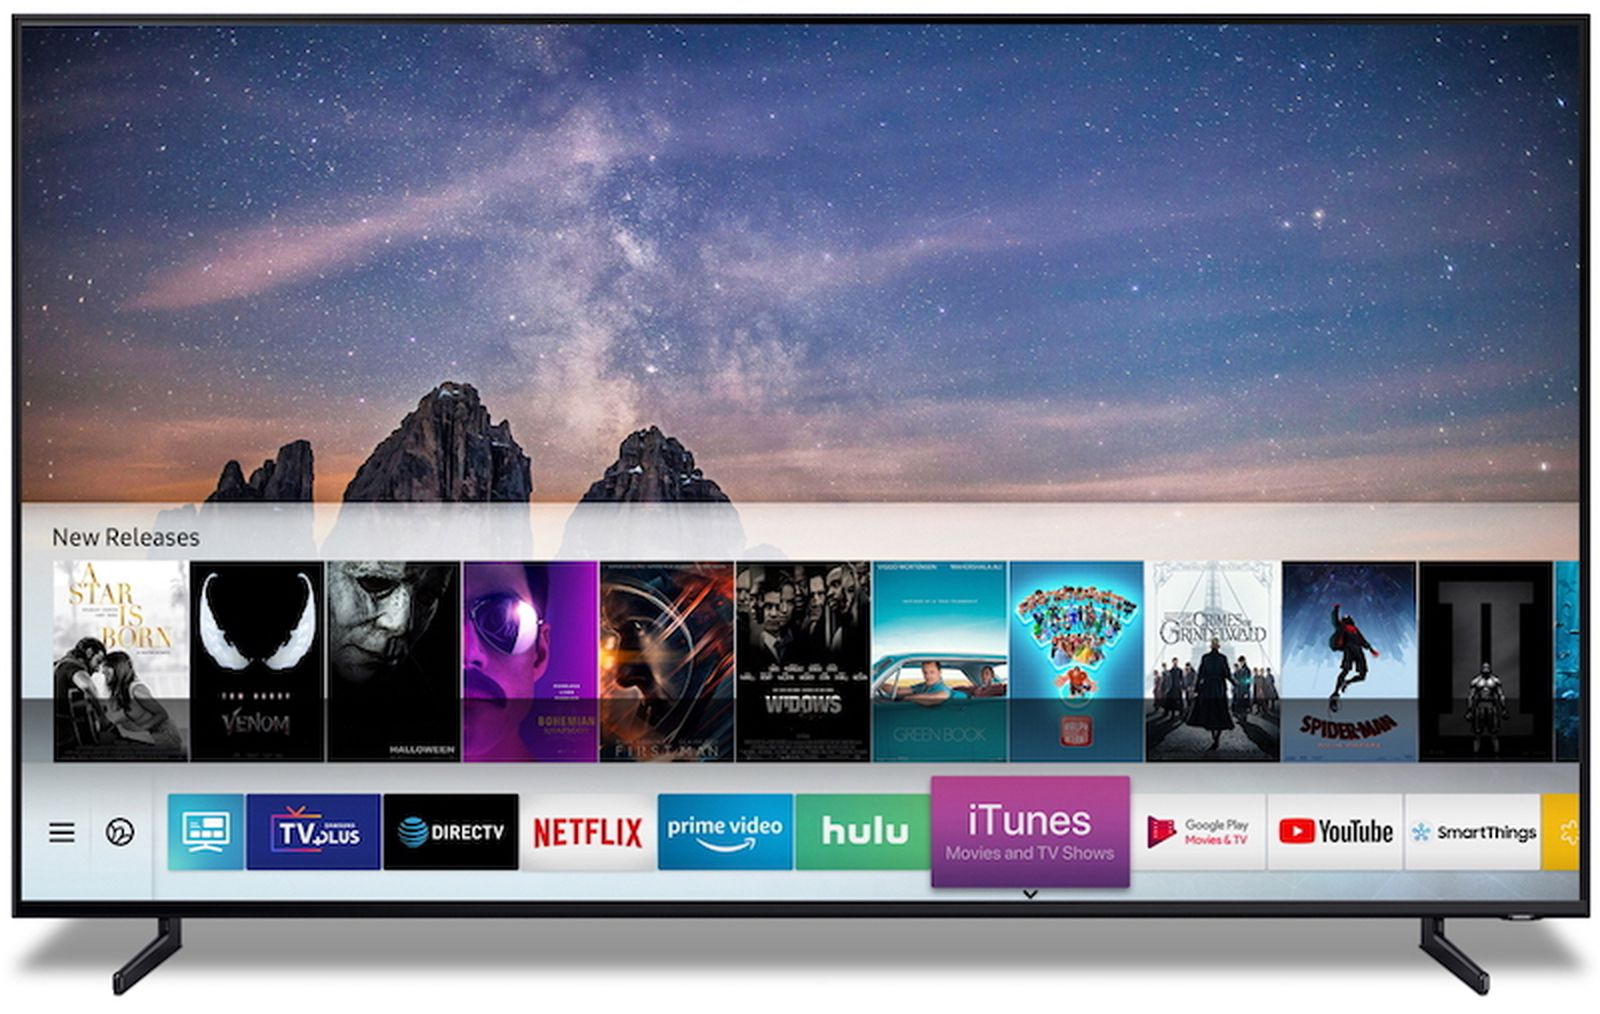 Apple Shares List Of Airplay 2 Enabled Smart Tvs From Samsung Lg Sony And Vizio Macrumors